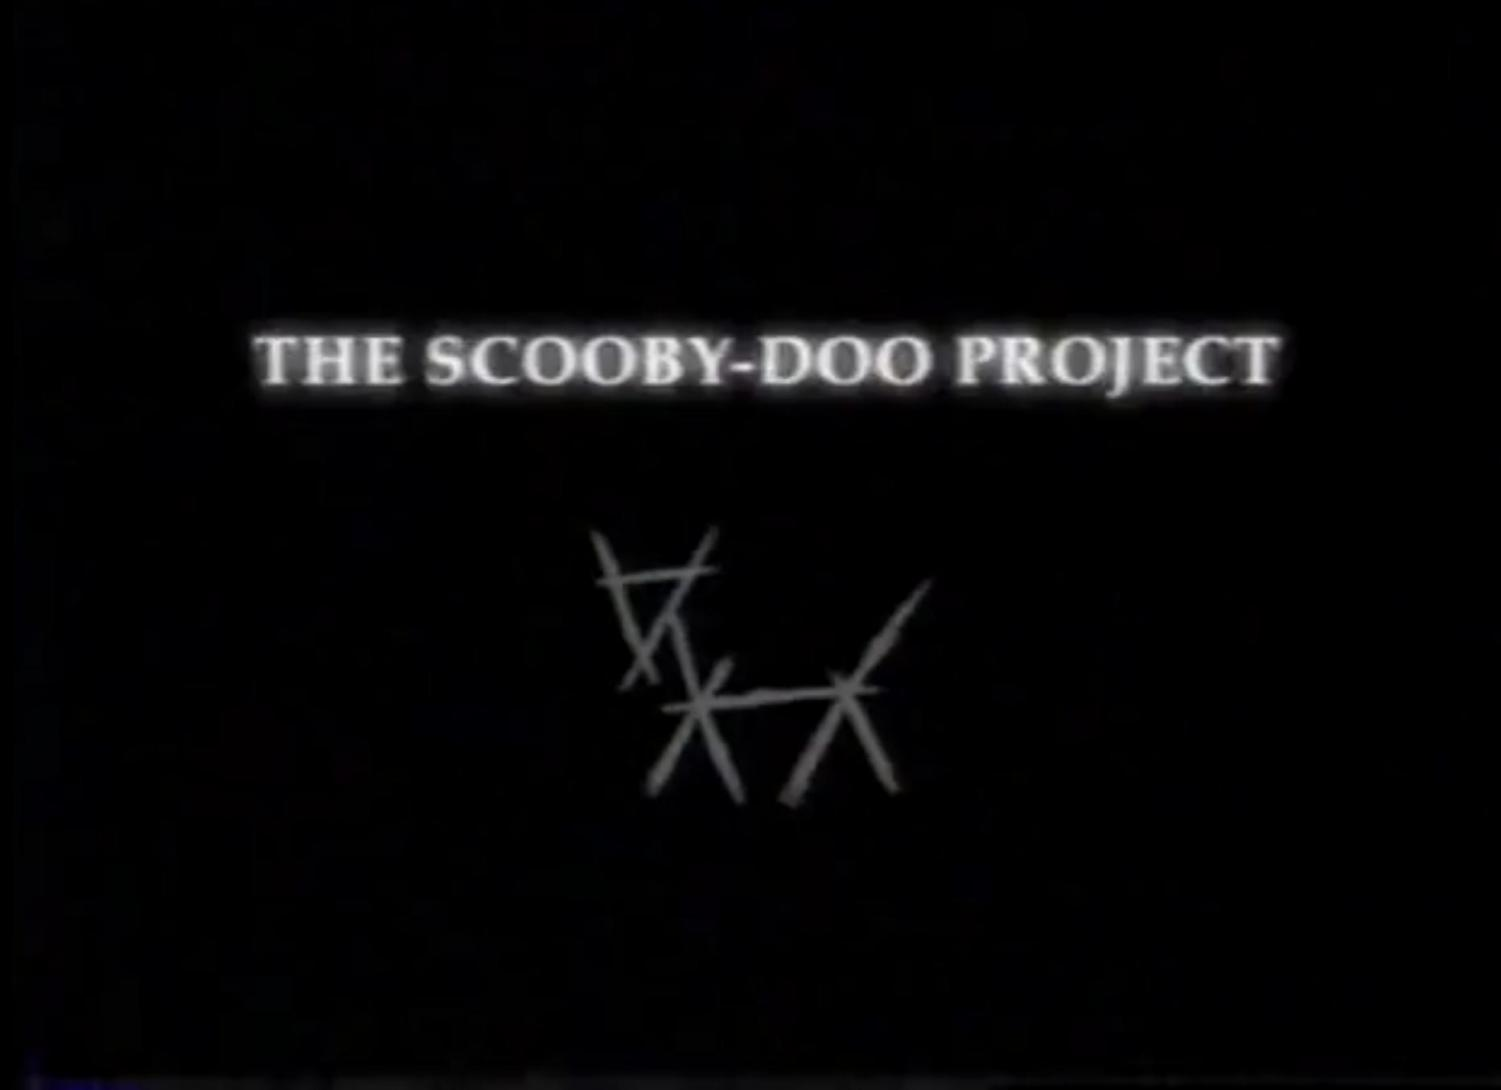 The Scooby-Doo Project